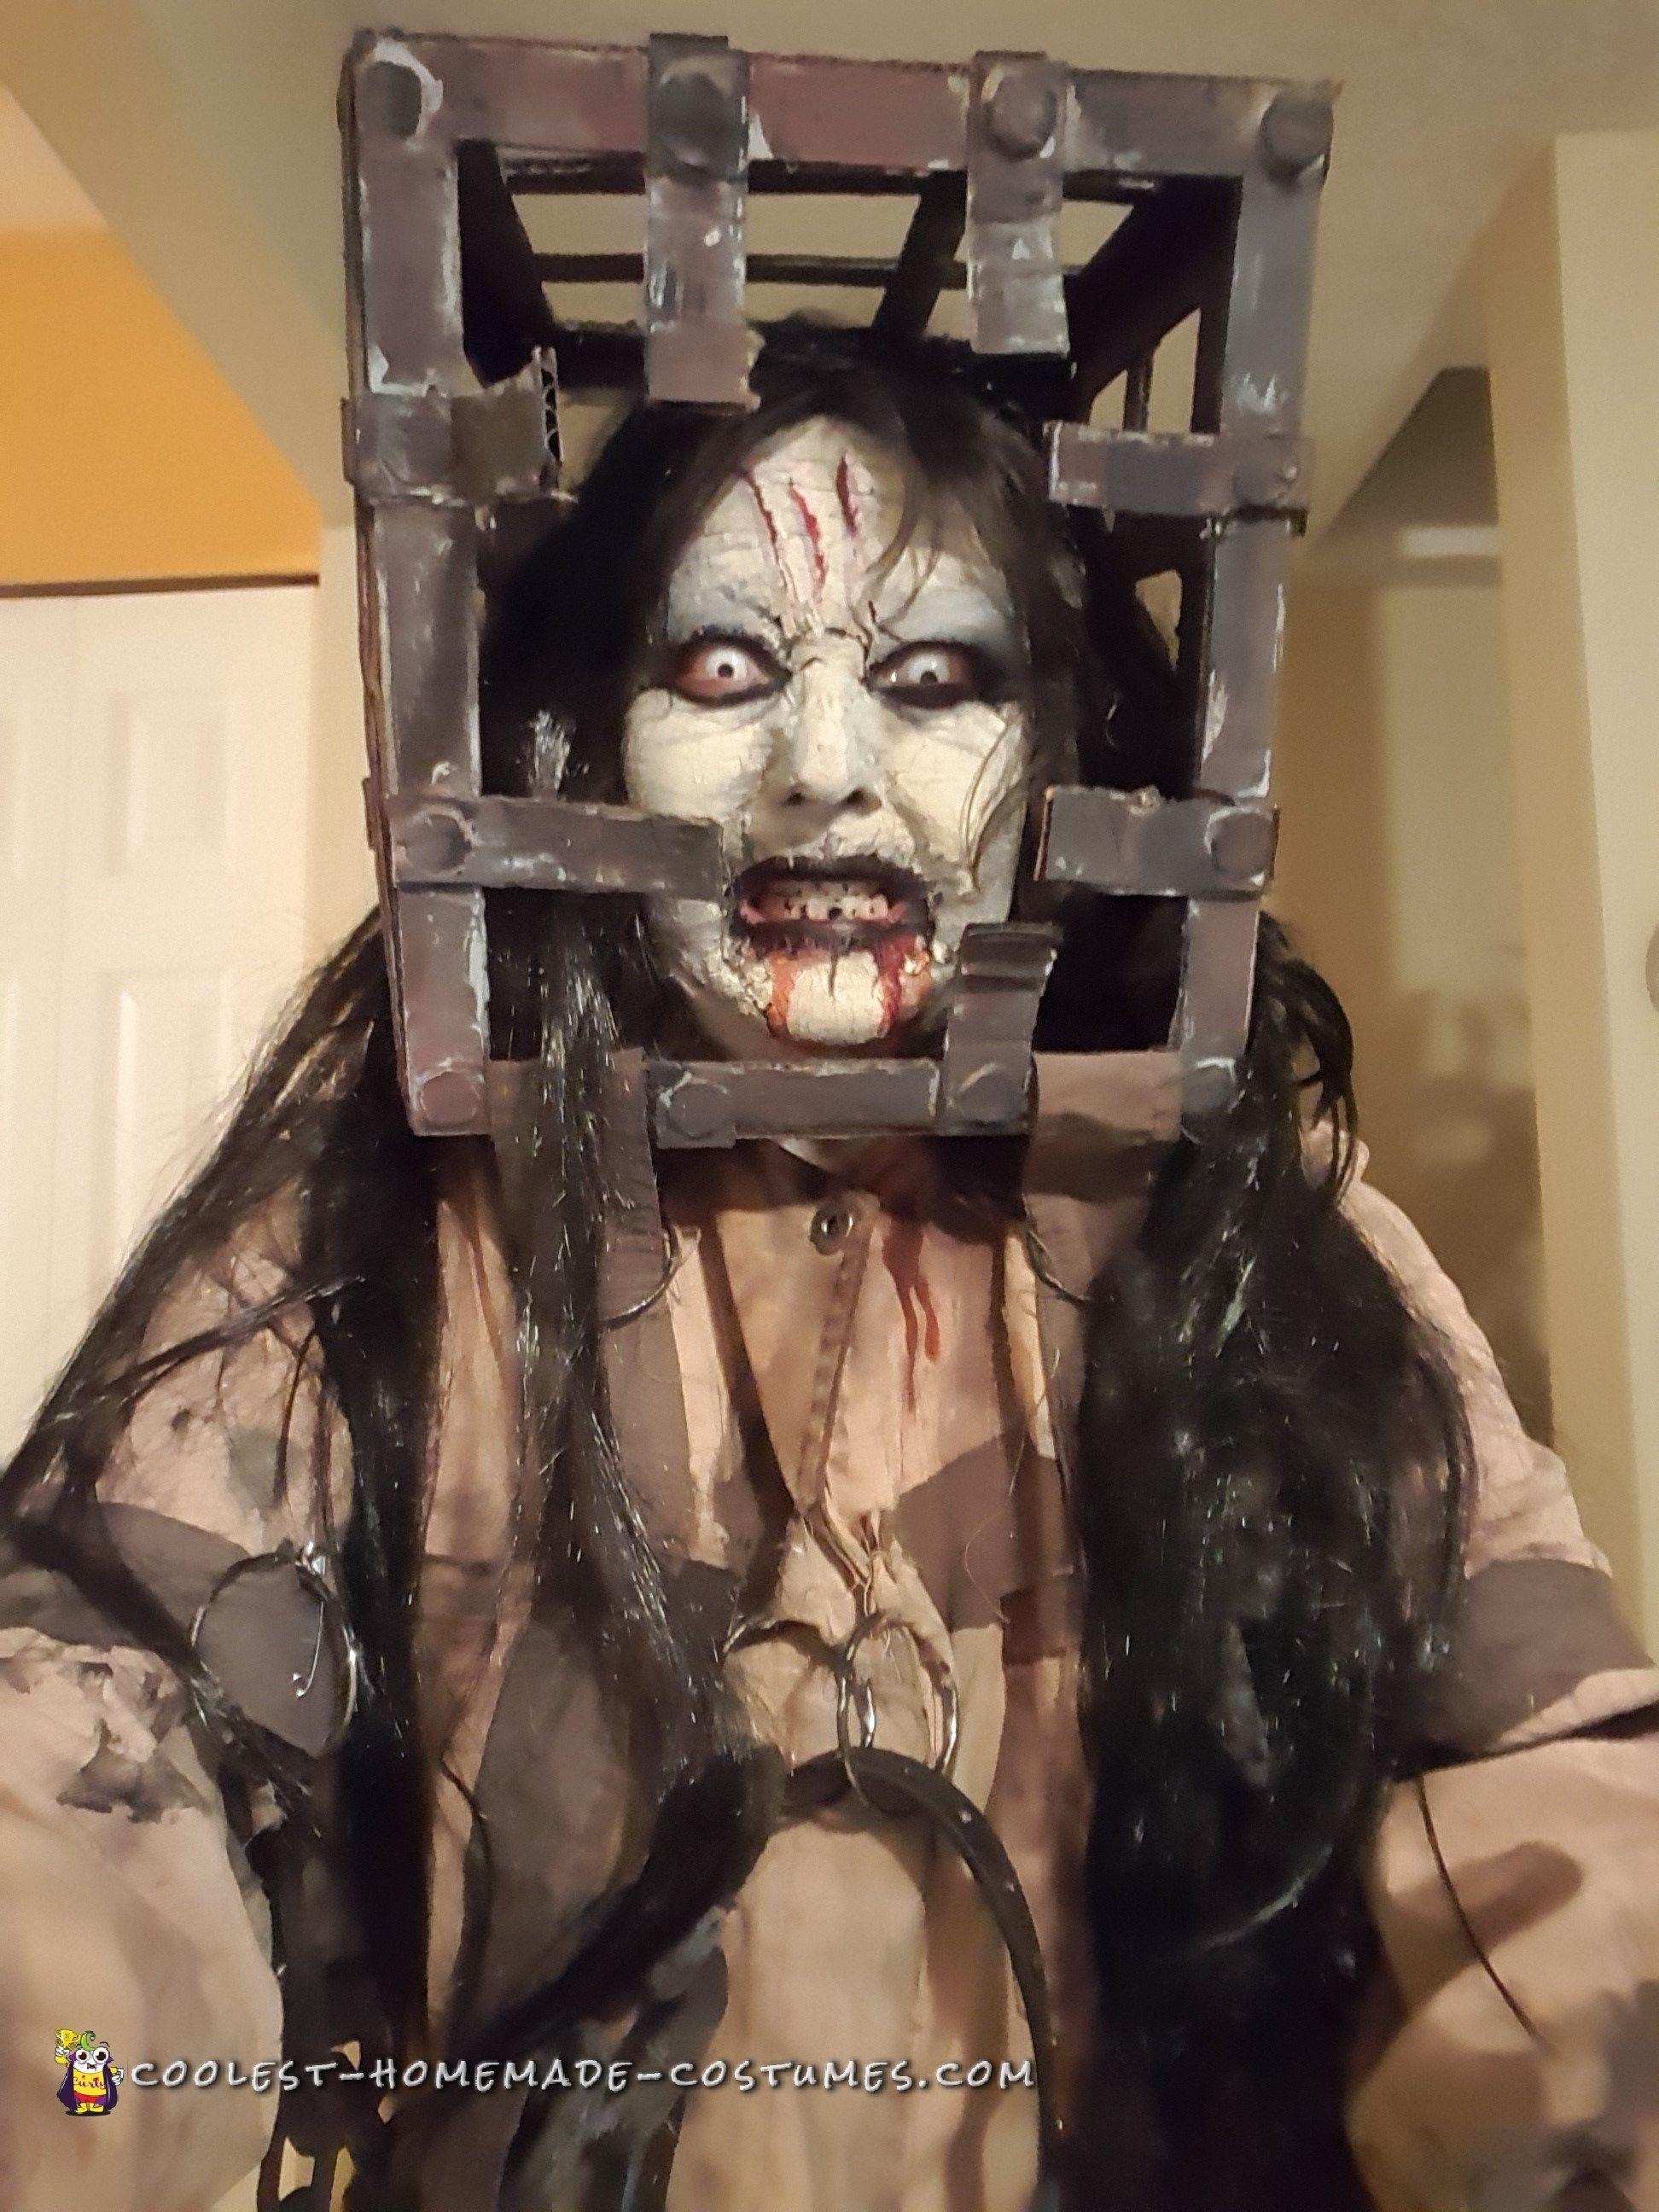 Creepiest diy 13 ghosts the jackal costume pinterest homemade coolest homemade costumes for diy costume enthusiasts solutioingenieria Image collections